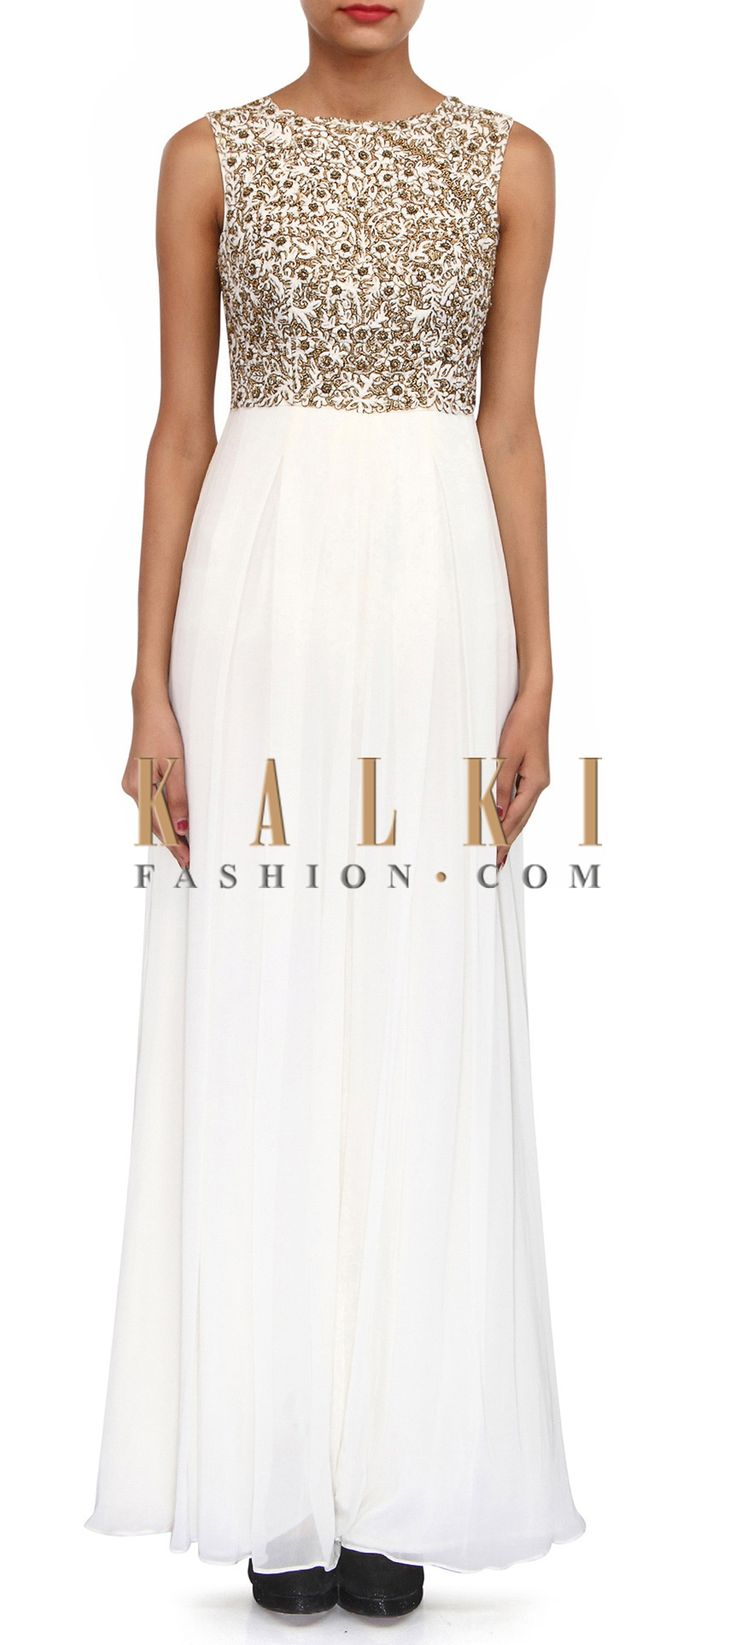 Buy Online from the link below. We ship worldwide (Free Shipping over US$100). Product SKU - 306832.Product Link - http://www.kalkifashion.com/white-jumpsuit-embellished-in-thread-and-zardosi-embroidery-only-on-kalki.html